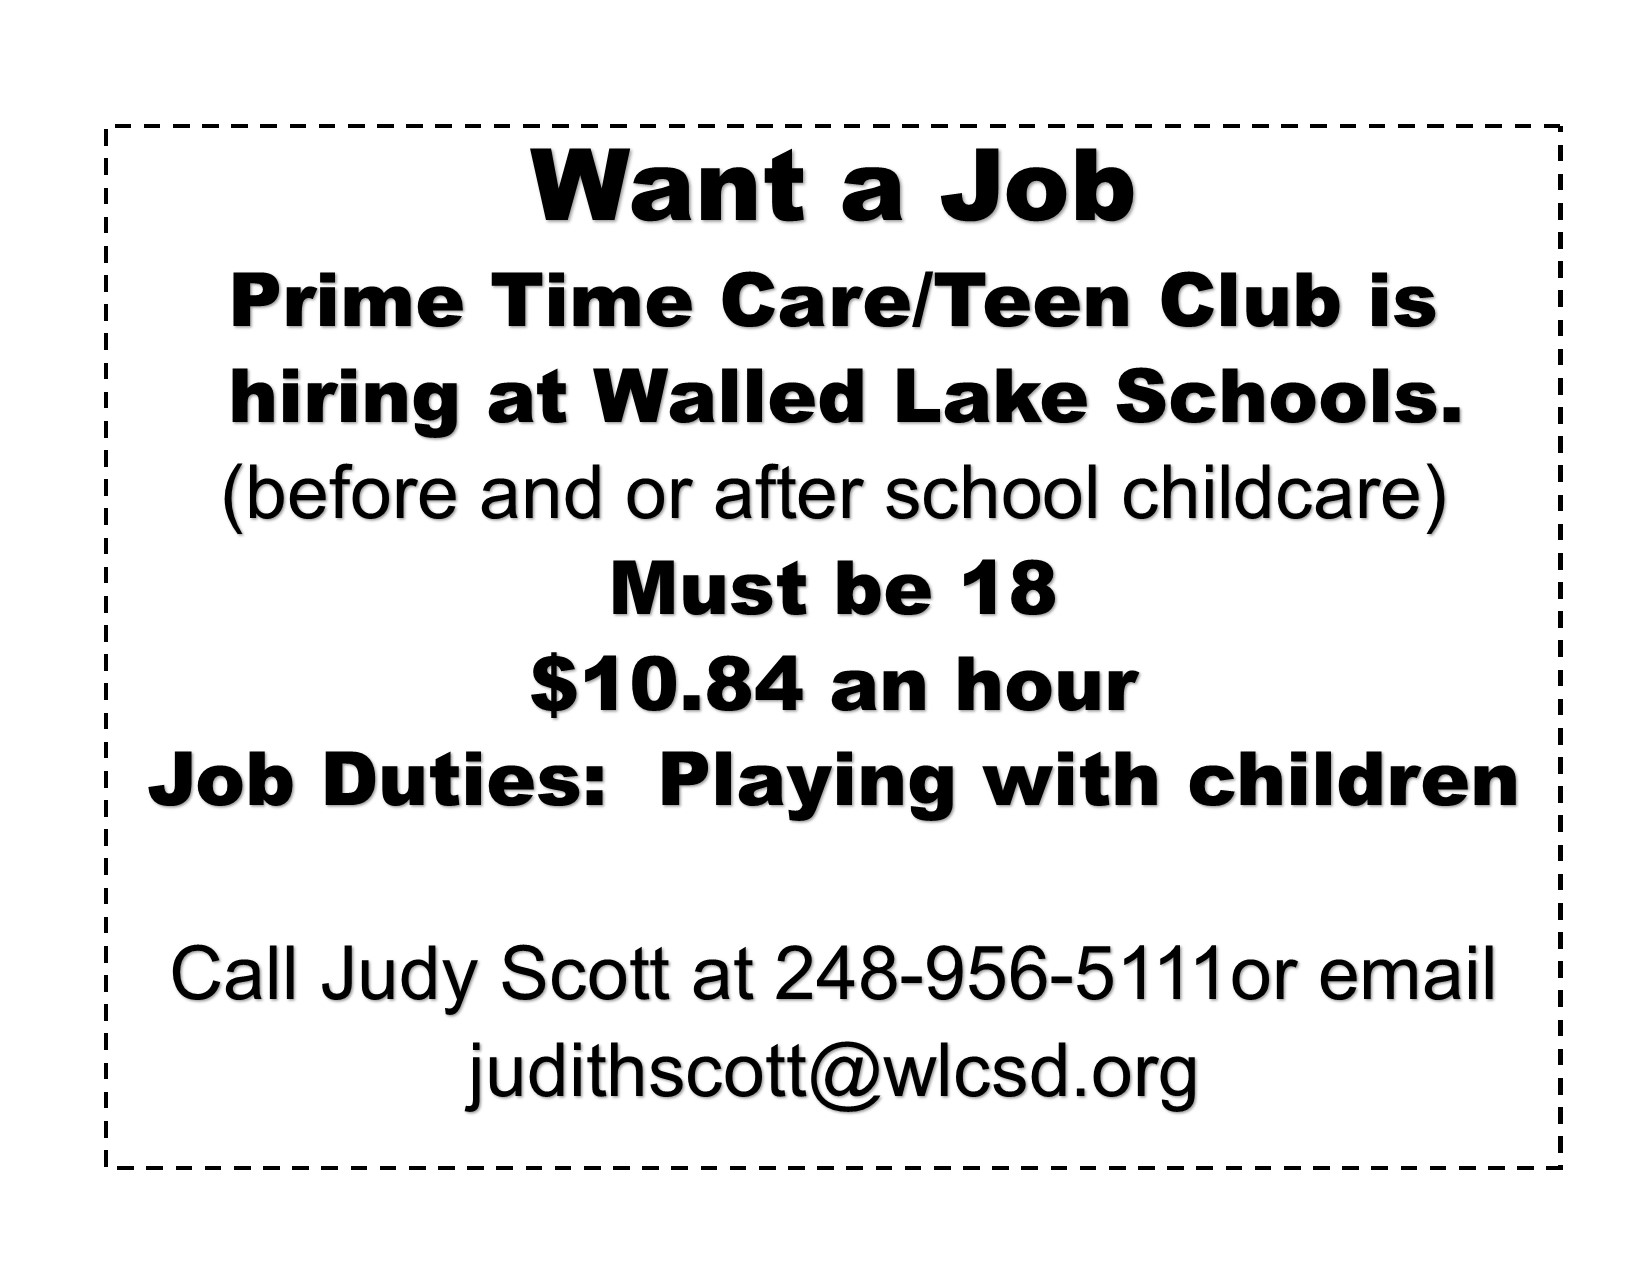 Prime Time Care/Teen Club is hiring - apply here